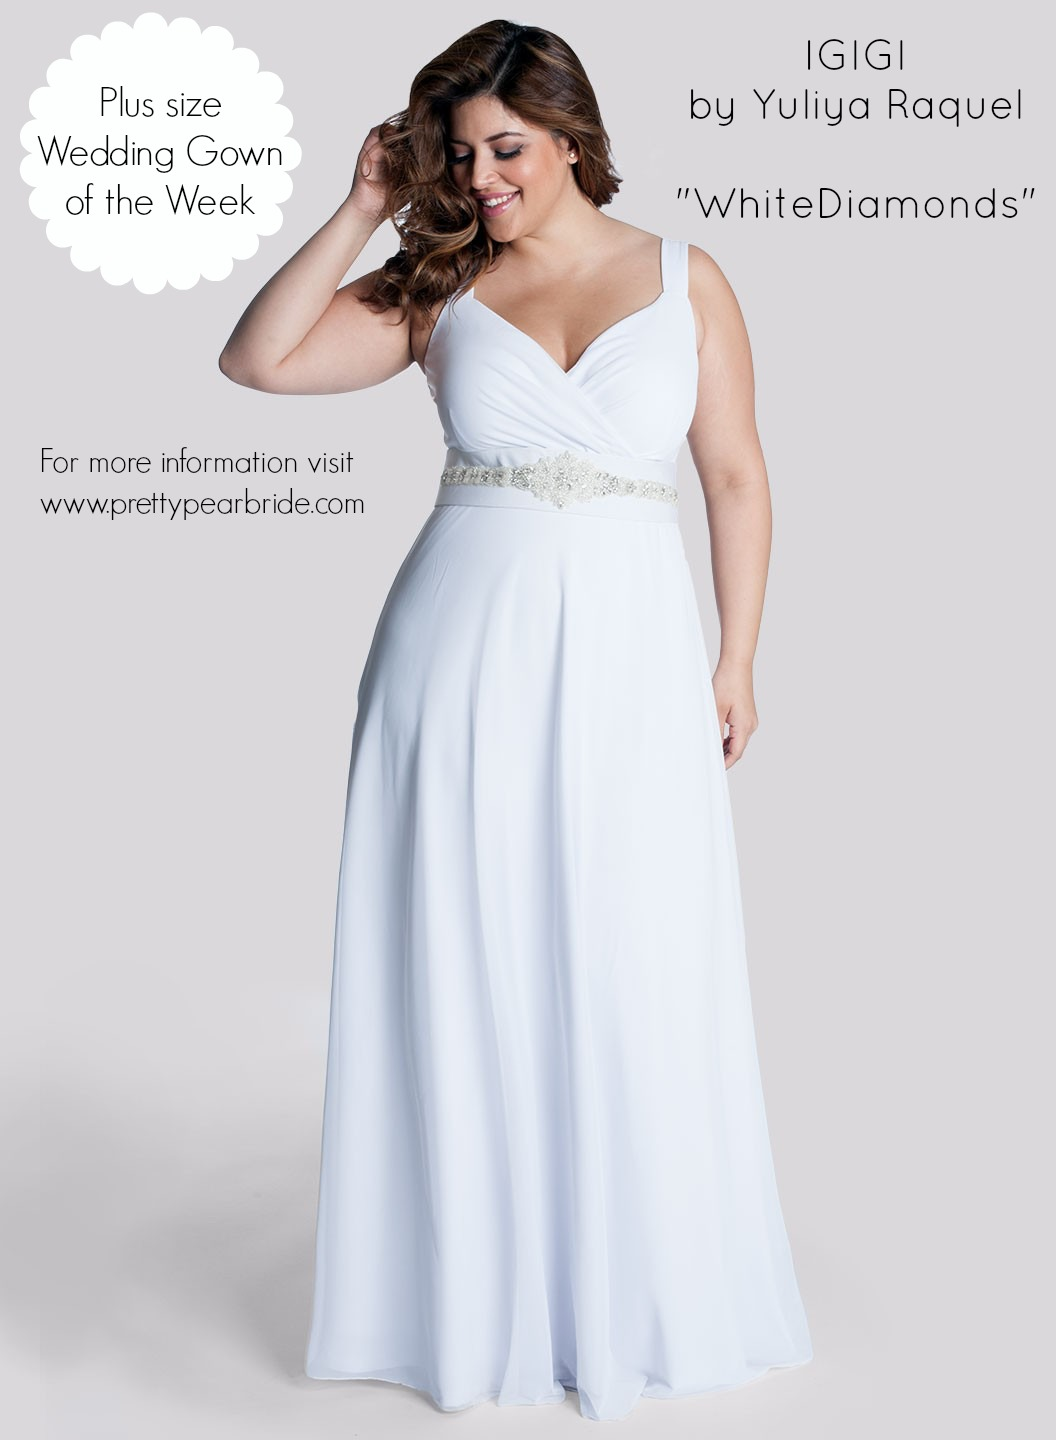 Plus Size Wedding Dress of the Week IGIGI  White Diamonds  The Pretty Pear Bride  Plus Size